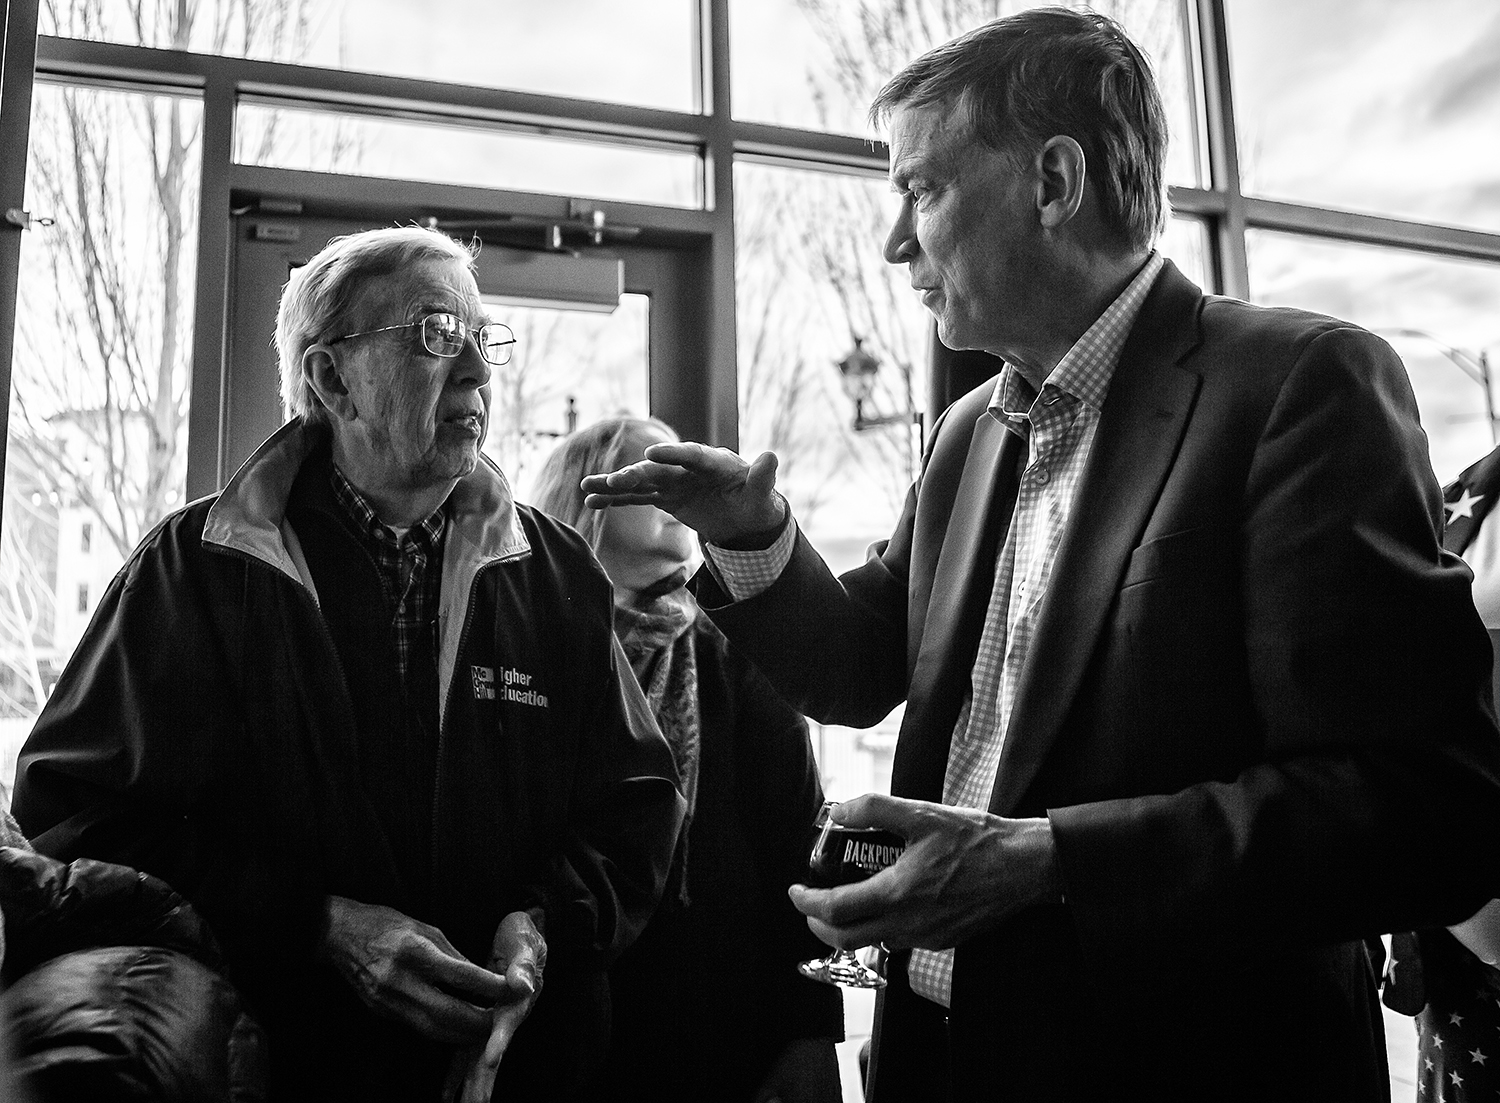 Former+Colorado+Gov.+John+Hickenlooper+meets+with+supporters+at+Backpocket+Brewery+in+Coralville+on+Friday%2C+April+12%2C+2019.